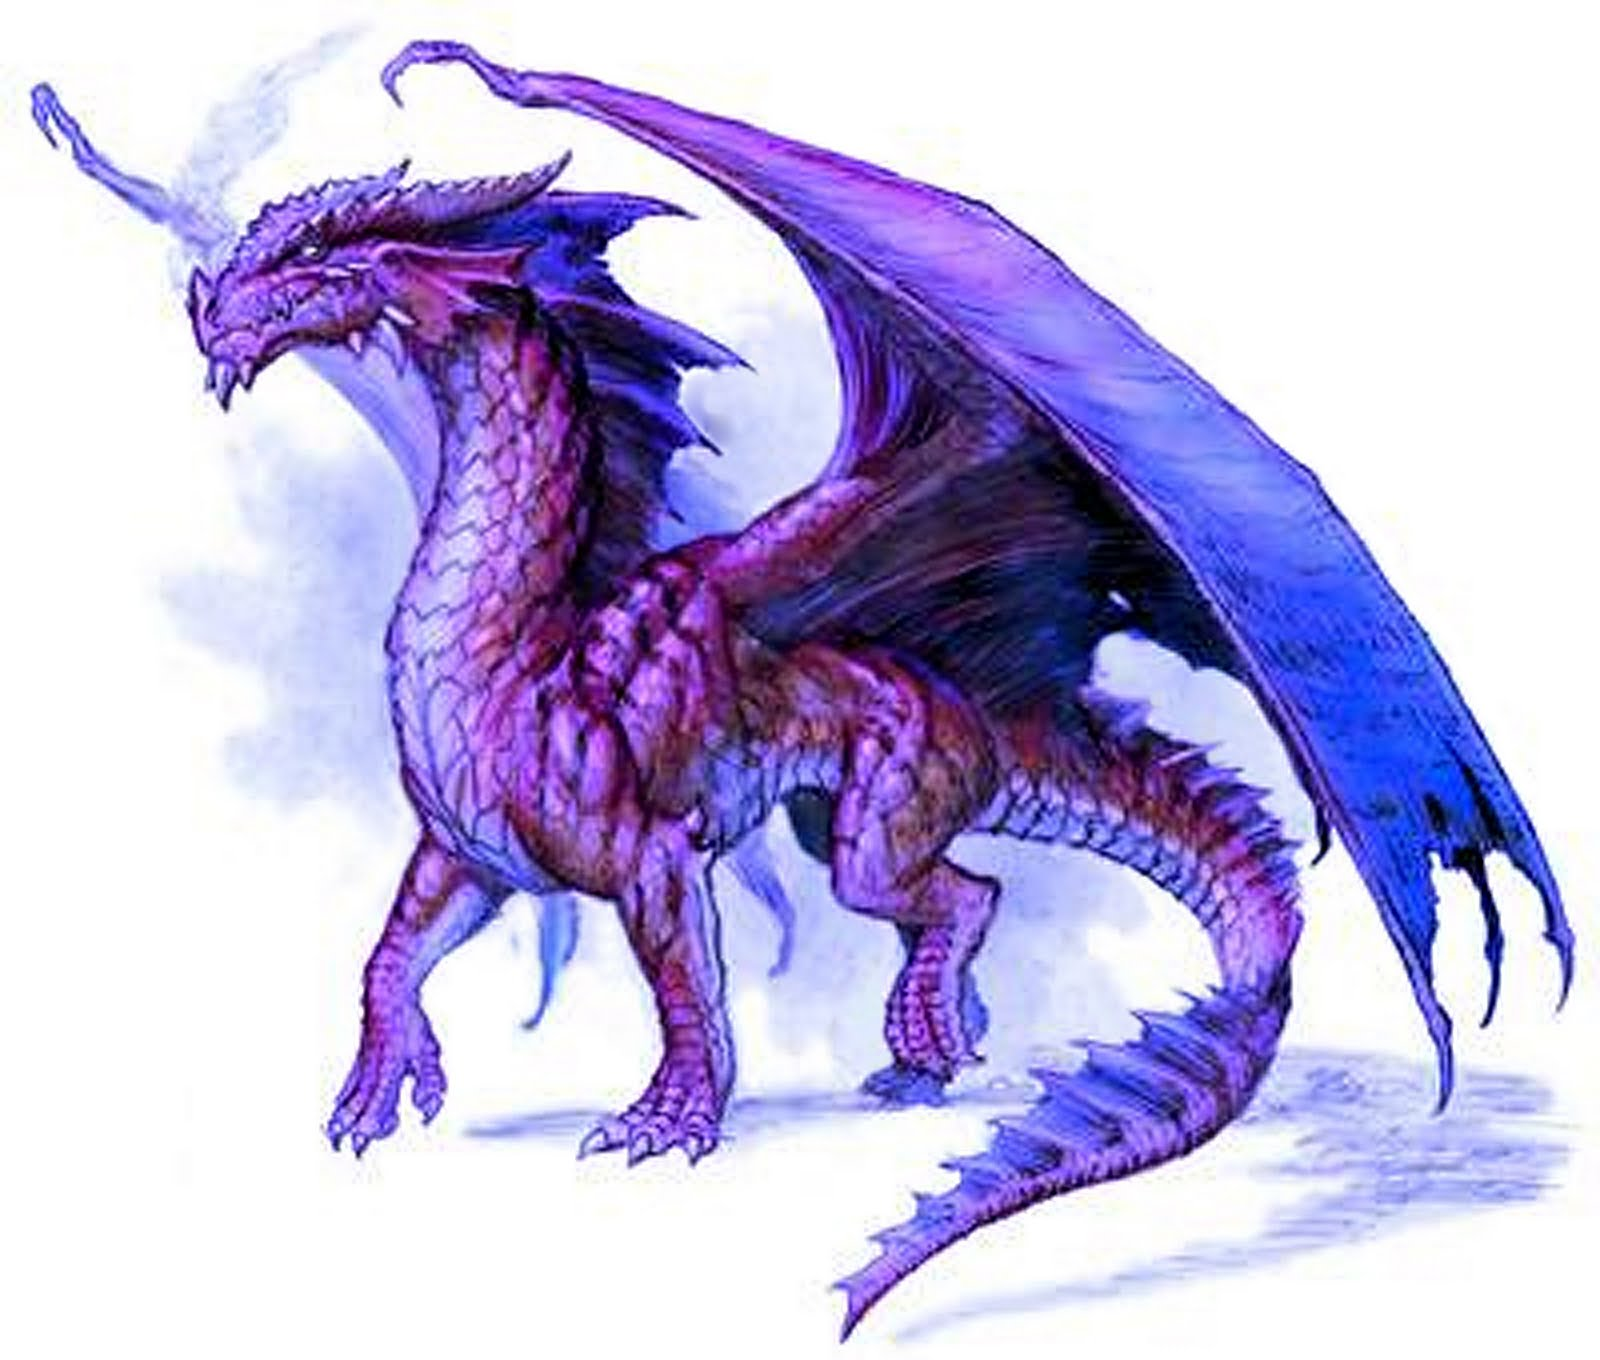 purple-dragon,fantasy, epic, animal, myth, how-to-train-your-dragon-3d-movie-review-blog-trailer,Dragon HD Wallpaper